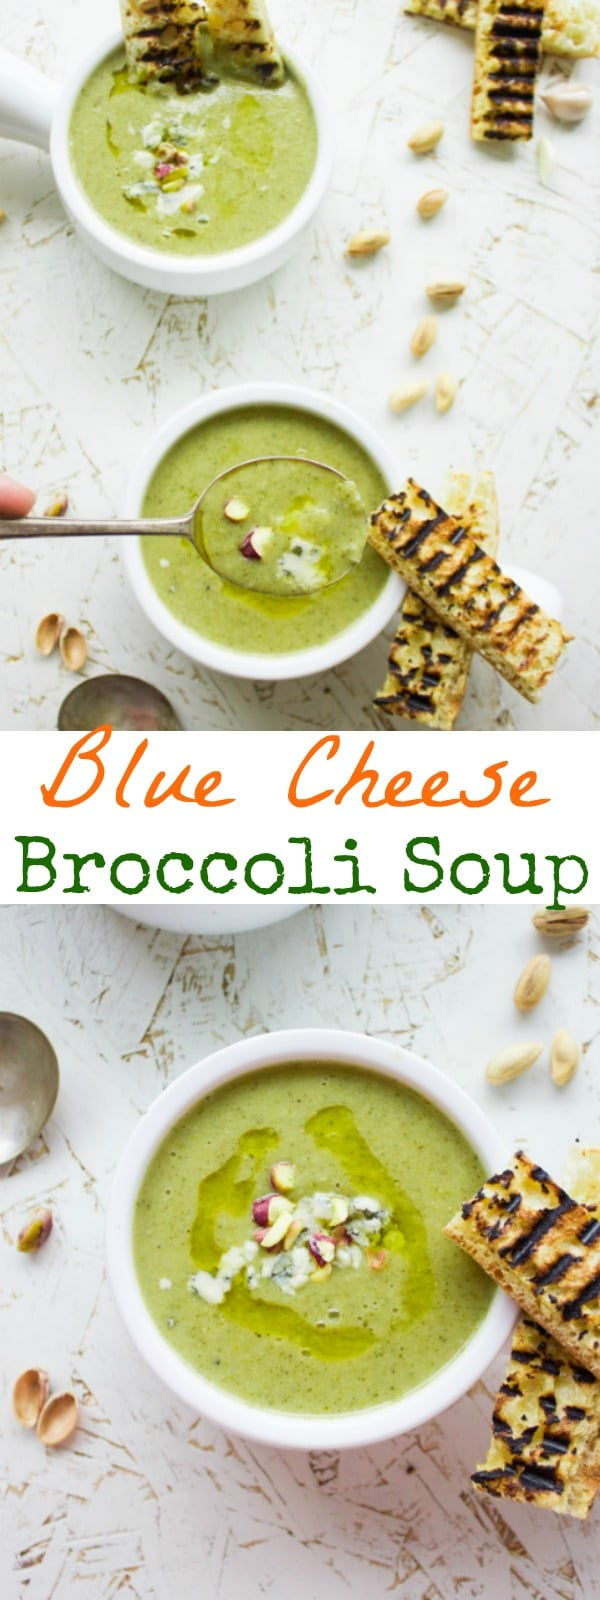 Blue Cheese Broccoli Soup | Try this light and silky smooth broccoli soup - completely made from scratch. The addition of blue cheese and a pistachio topping makes this simple soup elegant enough to serve at any dinner party! Use cashew cheese to make this a vegan broccoli soup.#soup, #easy, #healthy, #elegant, #vegetarian, #cleaneating